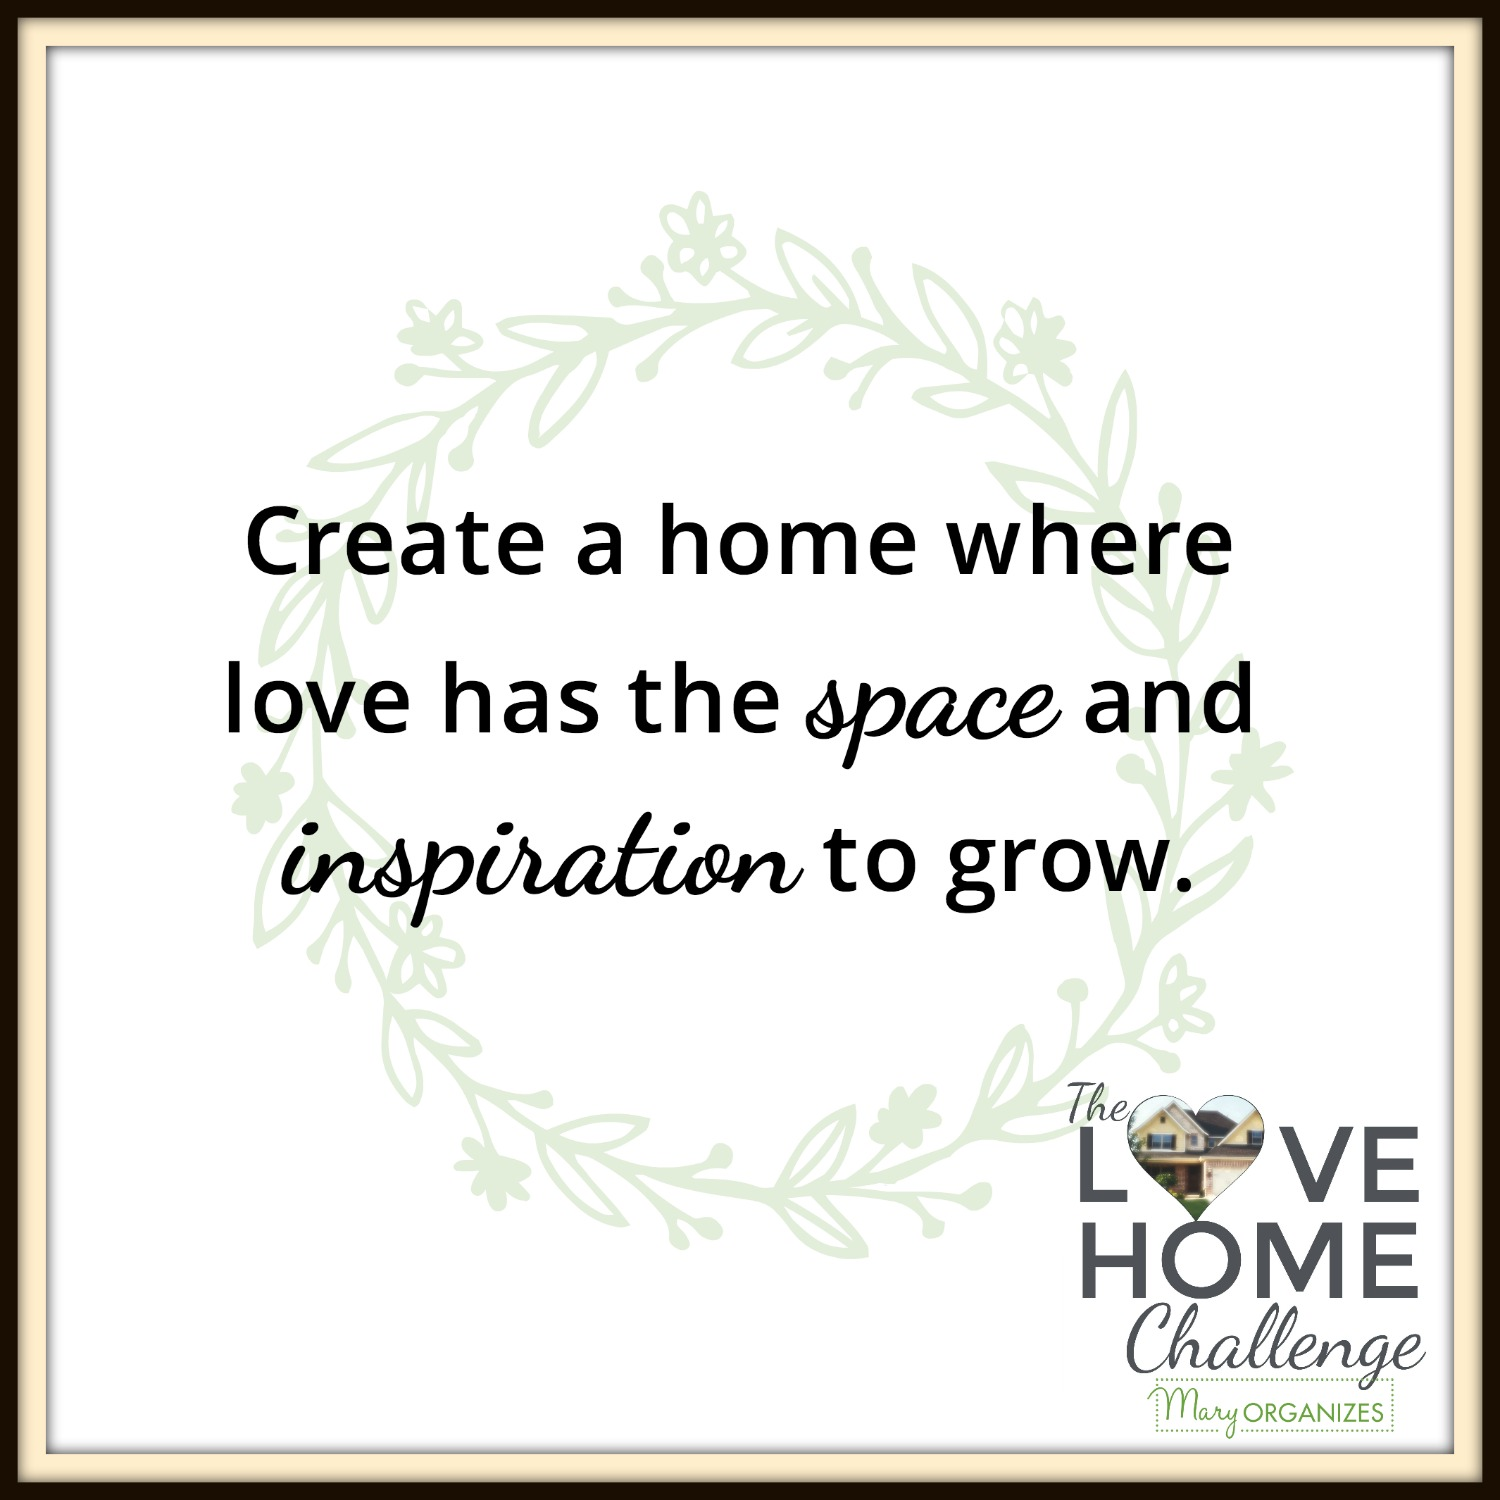 create-a-home-where-love-has-the-space-and-inspiration-to-grow-mary-organizes